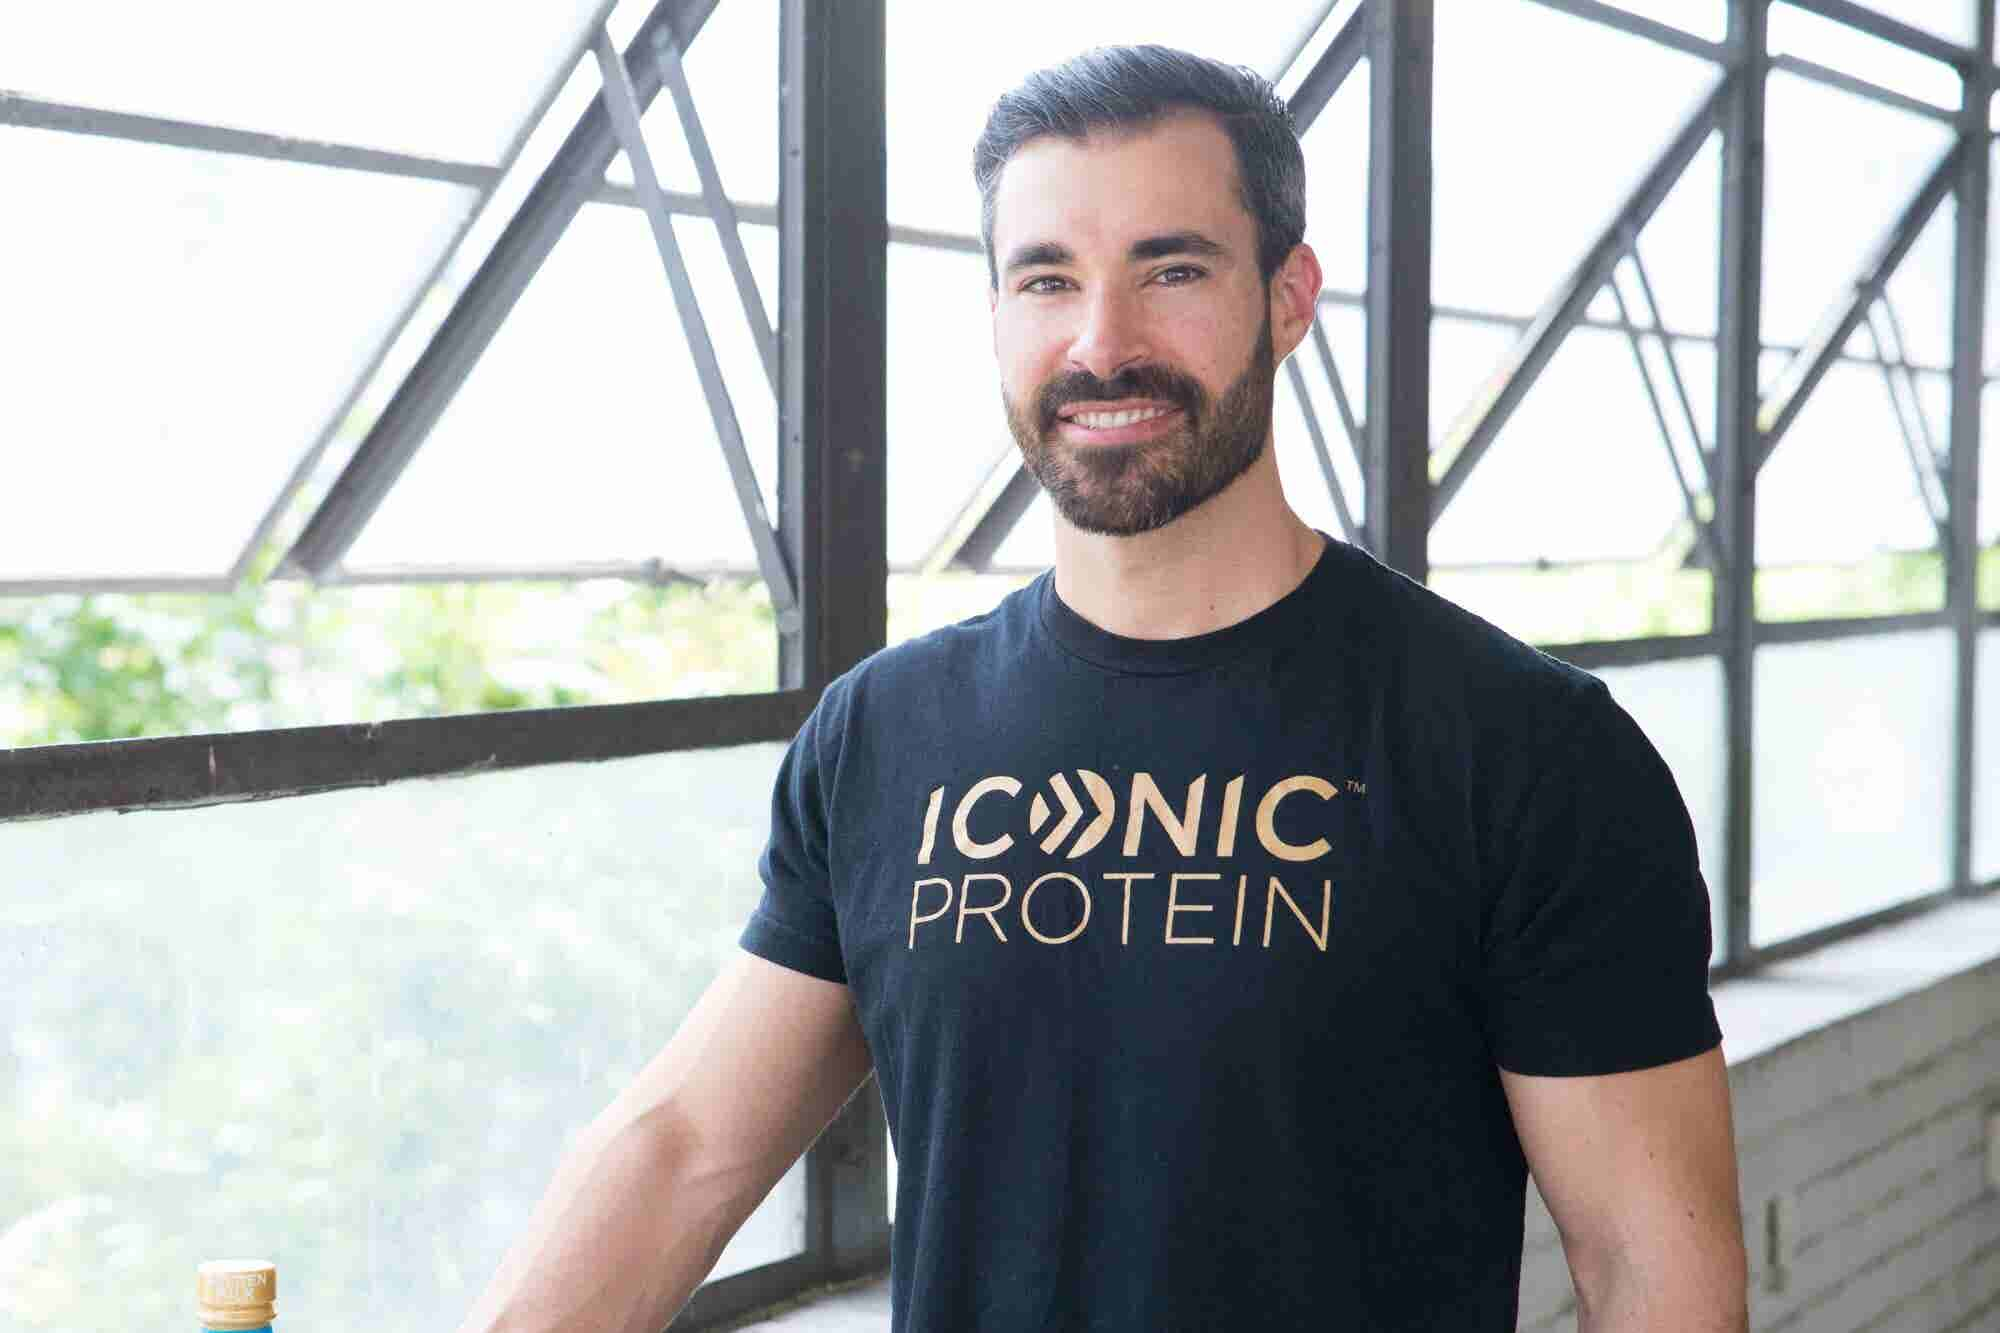 This Protein Drink Entrepreneur Was Able to Raise $8 Million -- After Moving Across the Country